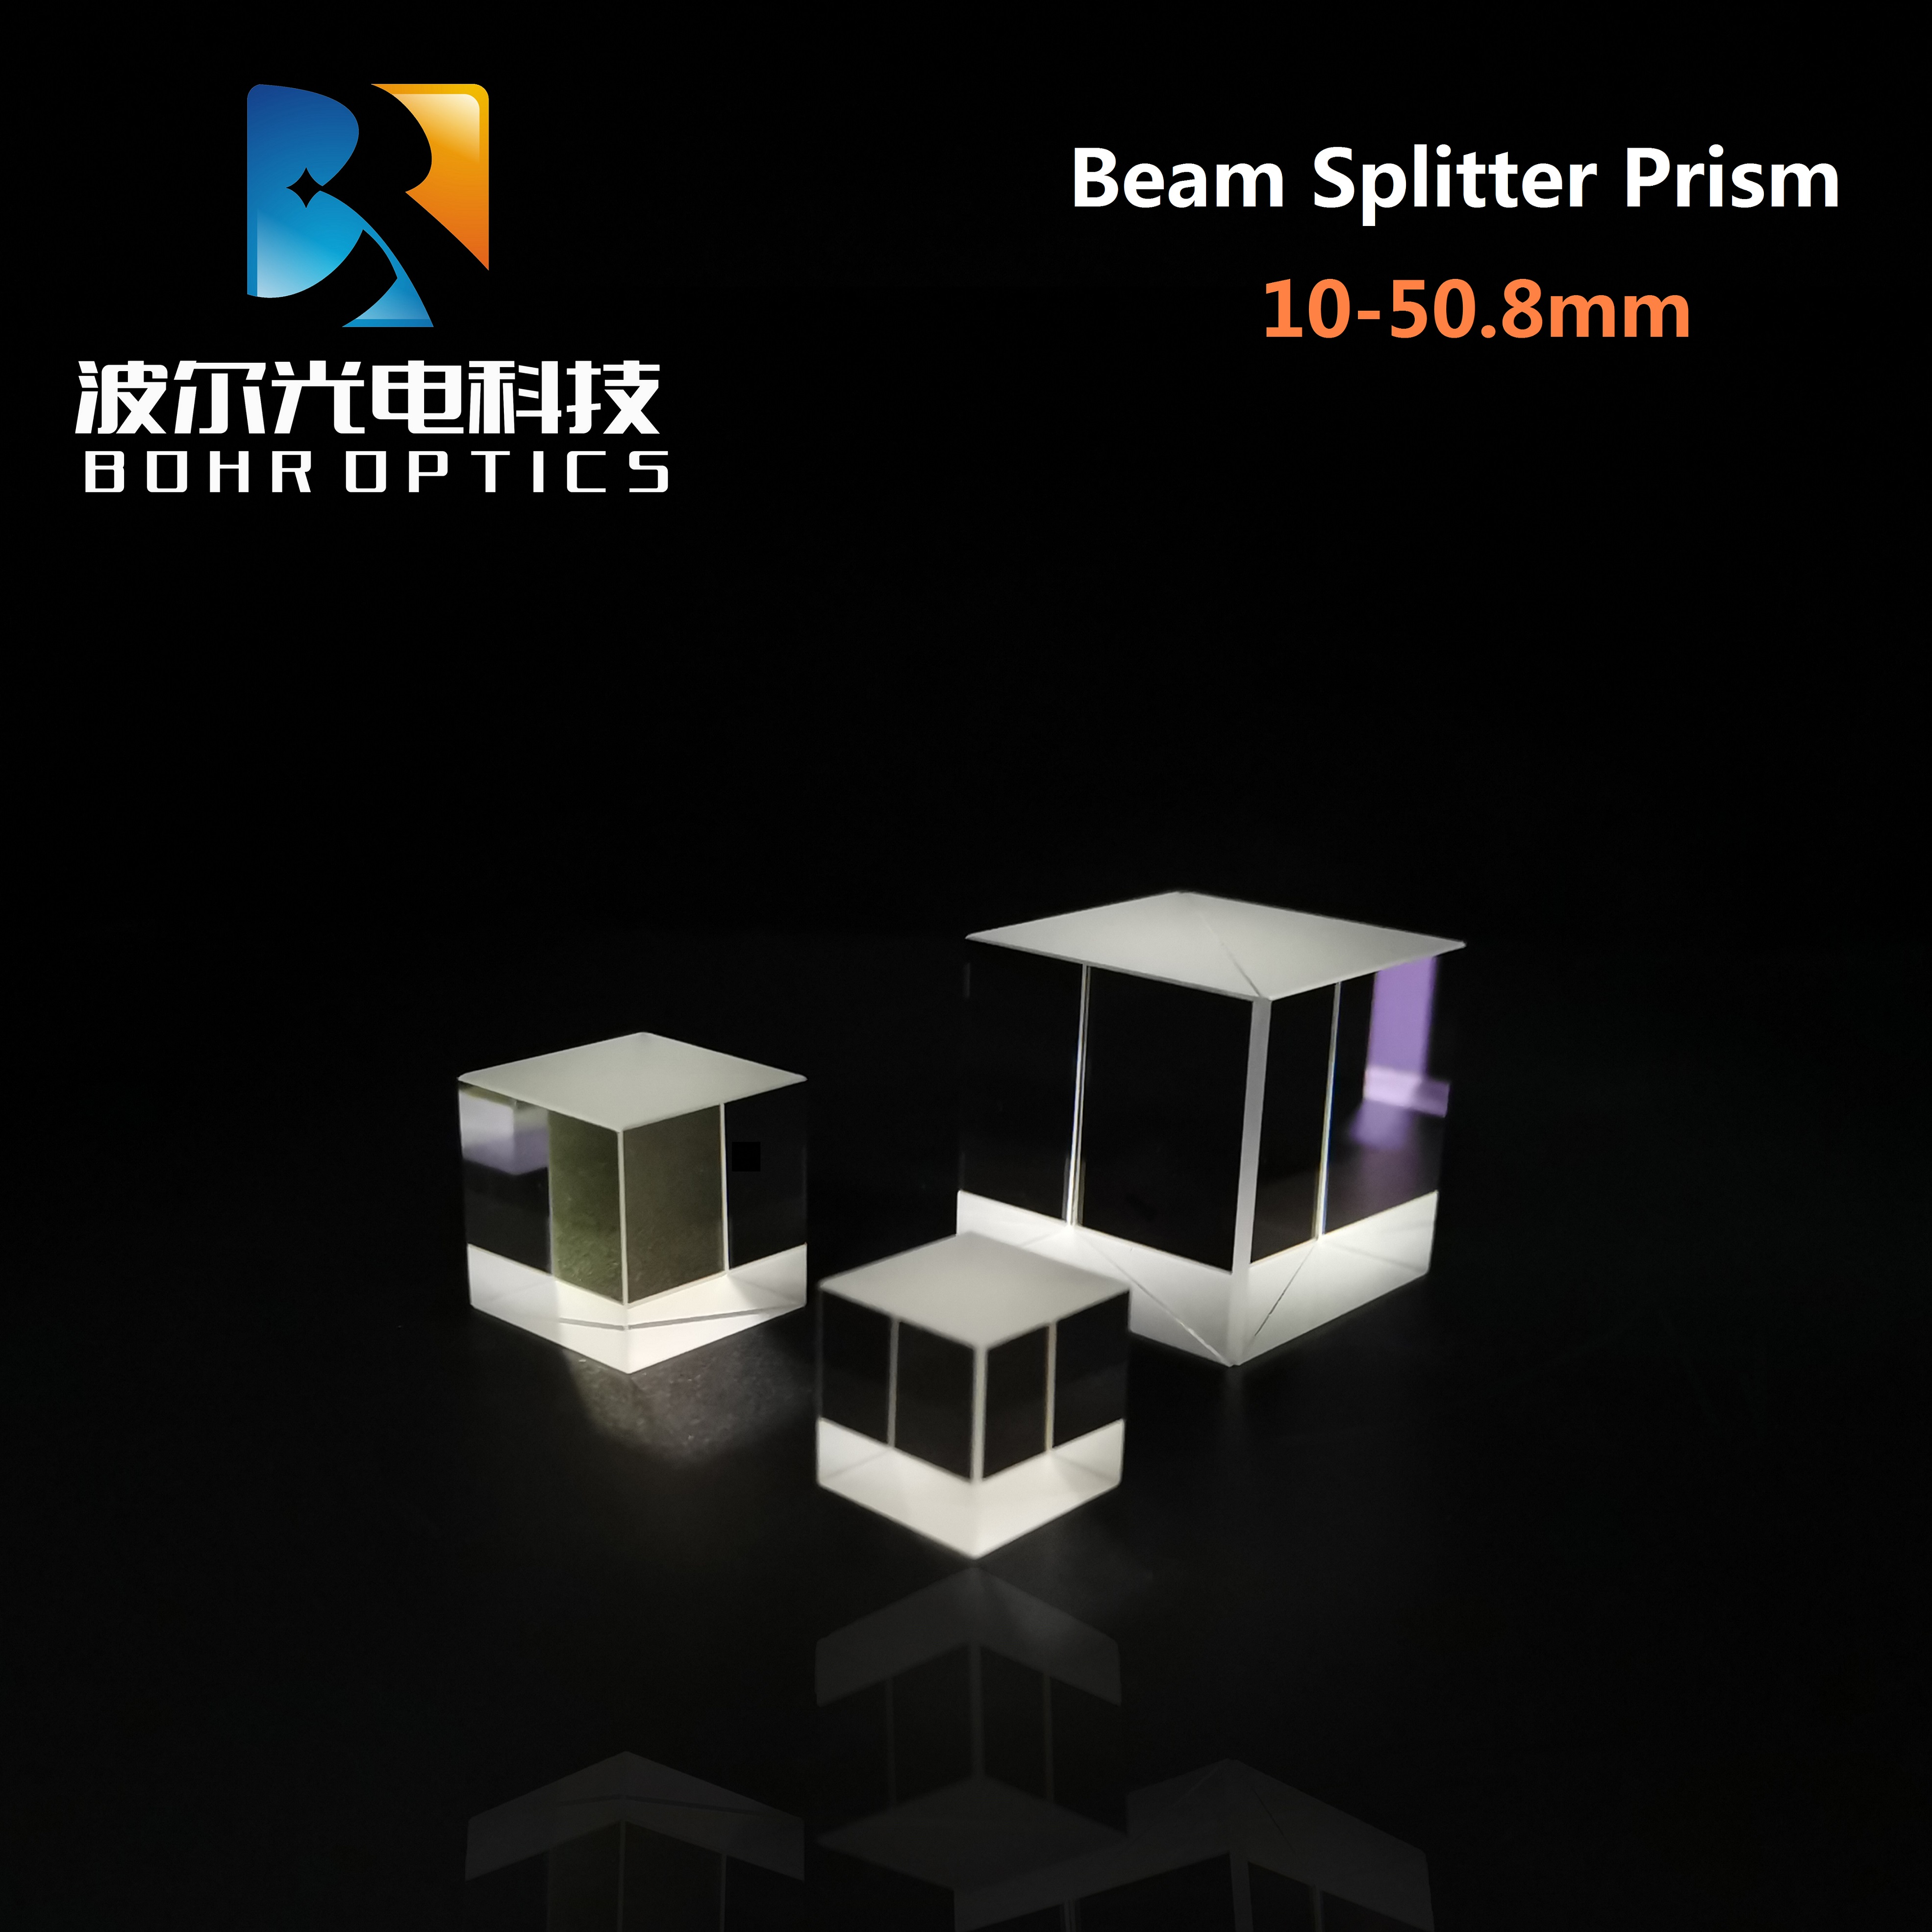 <font><b>15x15mm</b></font> Beam Splitter Prism N-BK7 Optical Glass Cube Dichroic Dispersion Splitting Ratio 50:50 for Precision optical instrument image